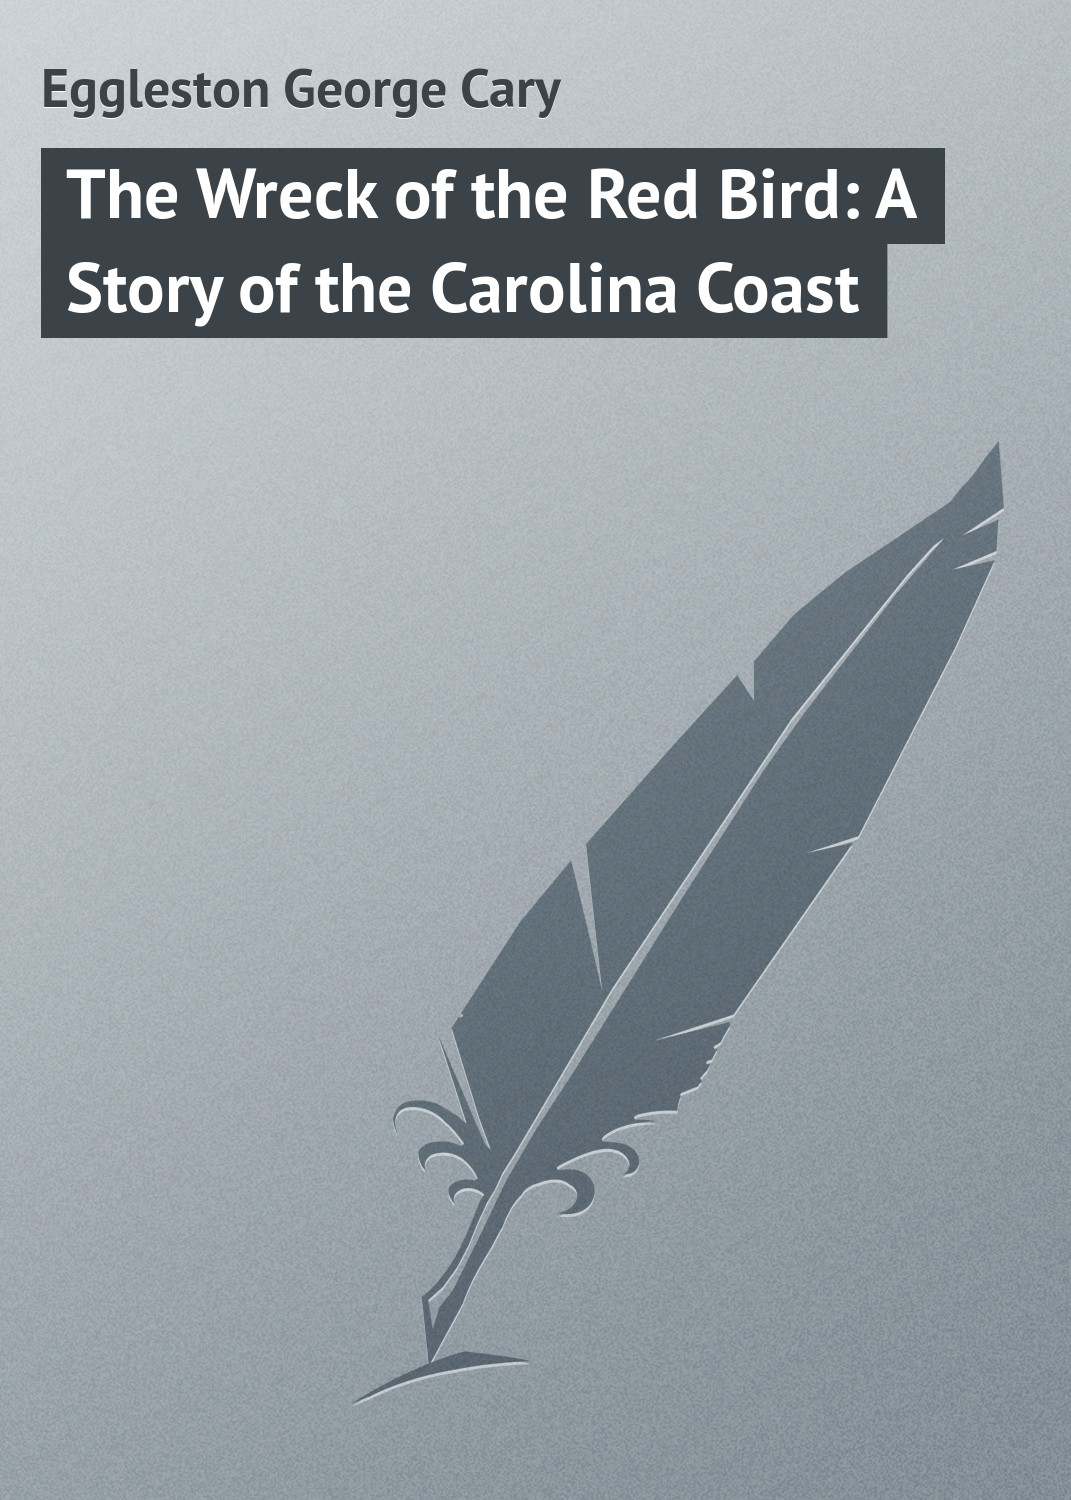 Eggleston George Cary The Wreck of the Red Bird: A Story of the Carolina Coast sulphated galactans of red seaweeds